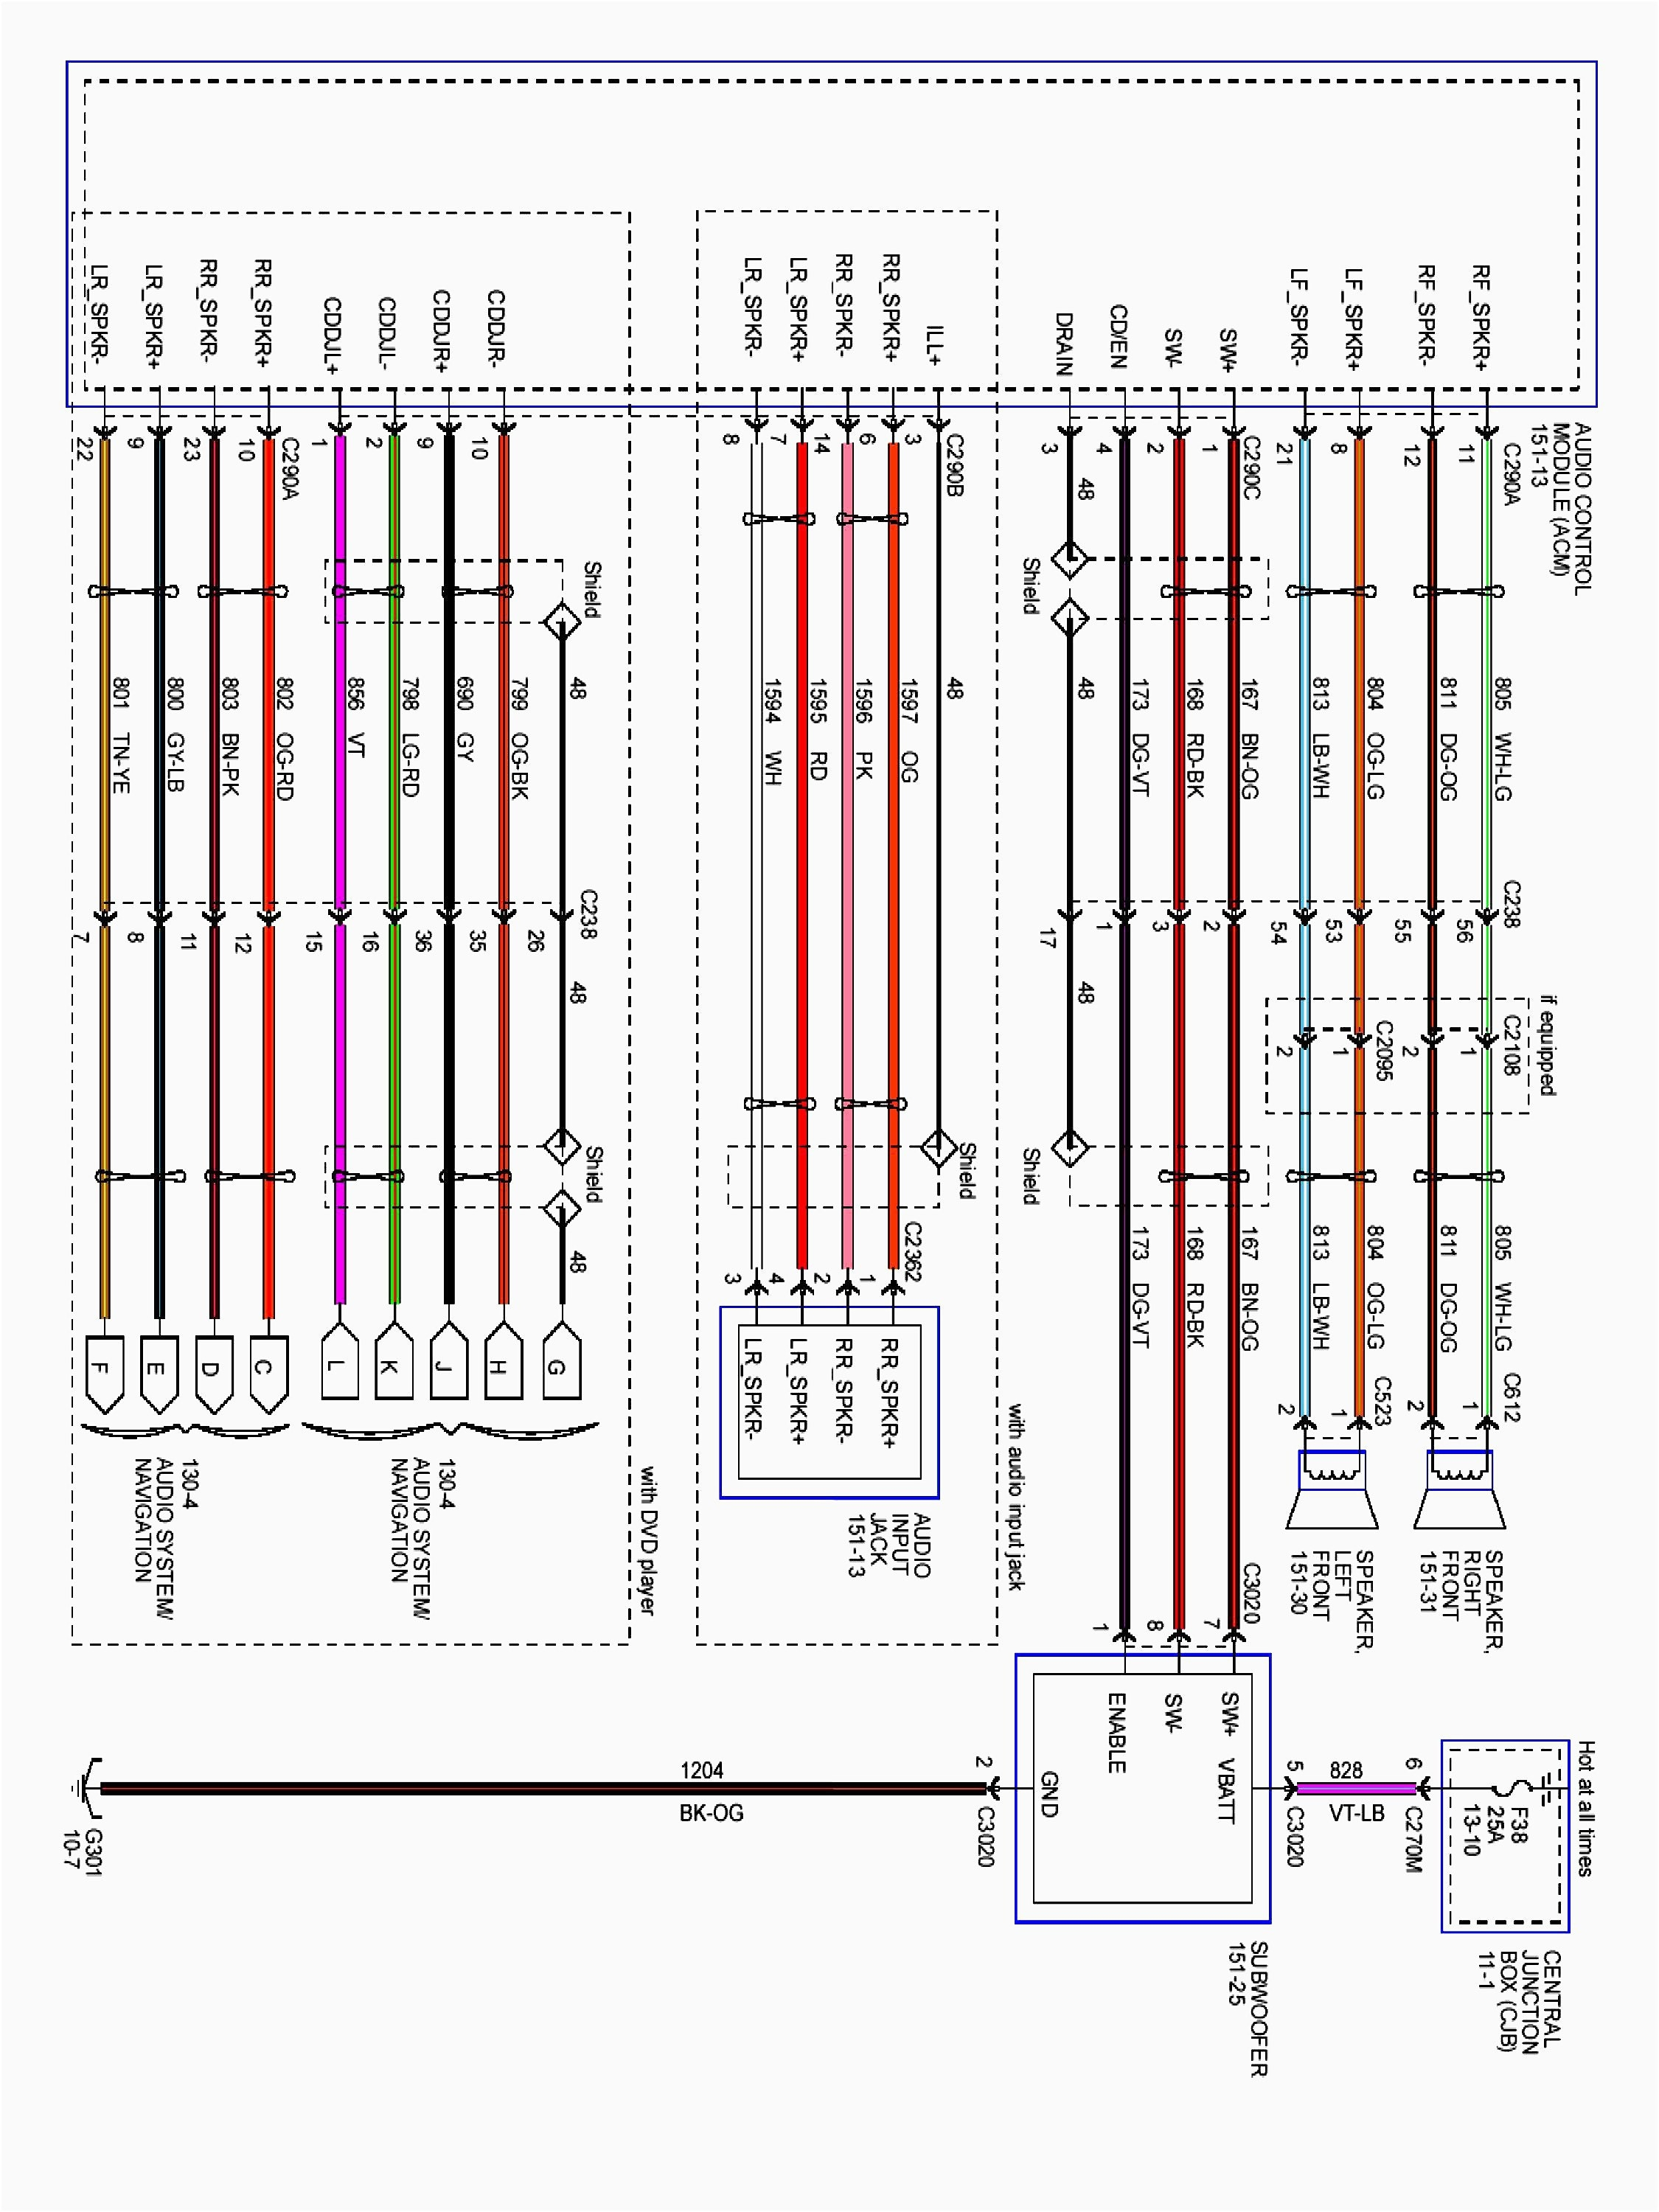 2010 f150 wiring diagram custom wiring diagram 04 ford f 150 trailer wiring diagram trusted wiring diagrams rh kroud co 2010 f150 wiring publicscrutiny Images